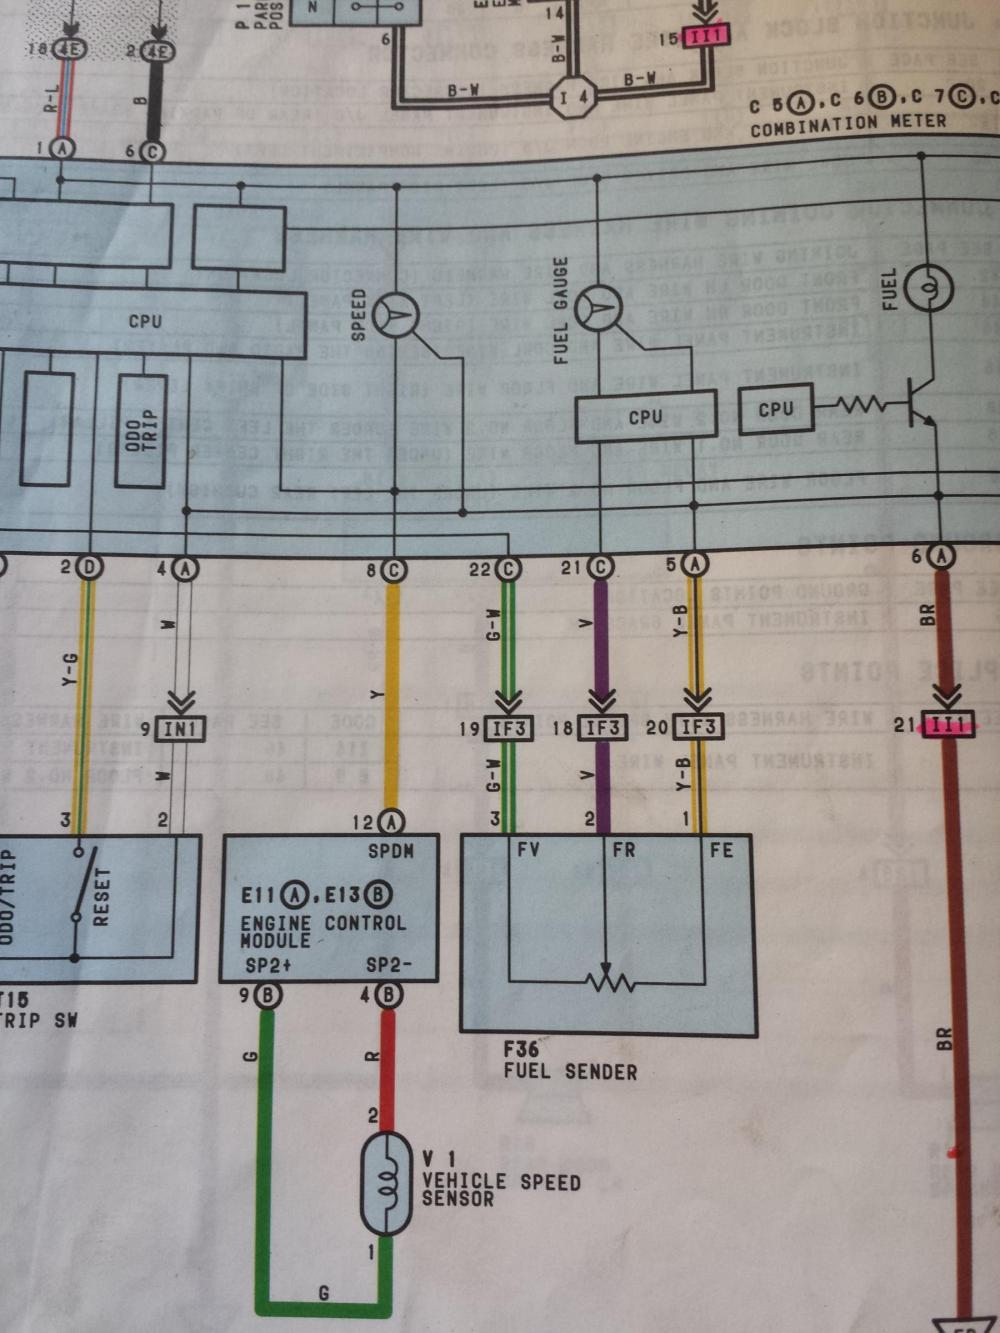 medium resolution of wiring question ls400 dash in a toyota rv 20150601 192103 jpg